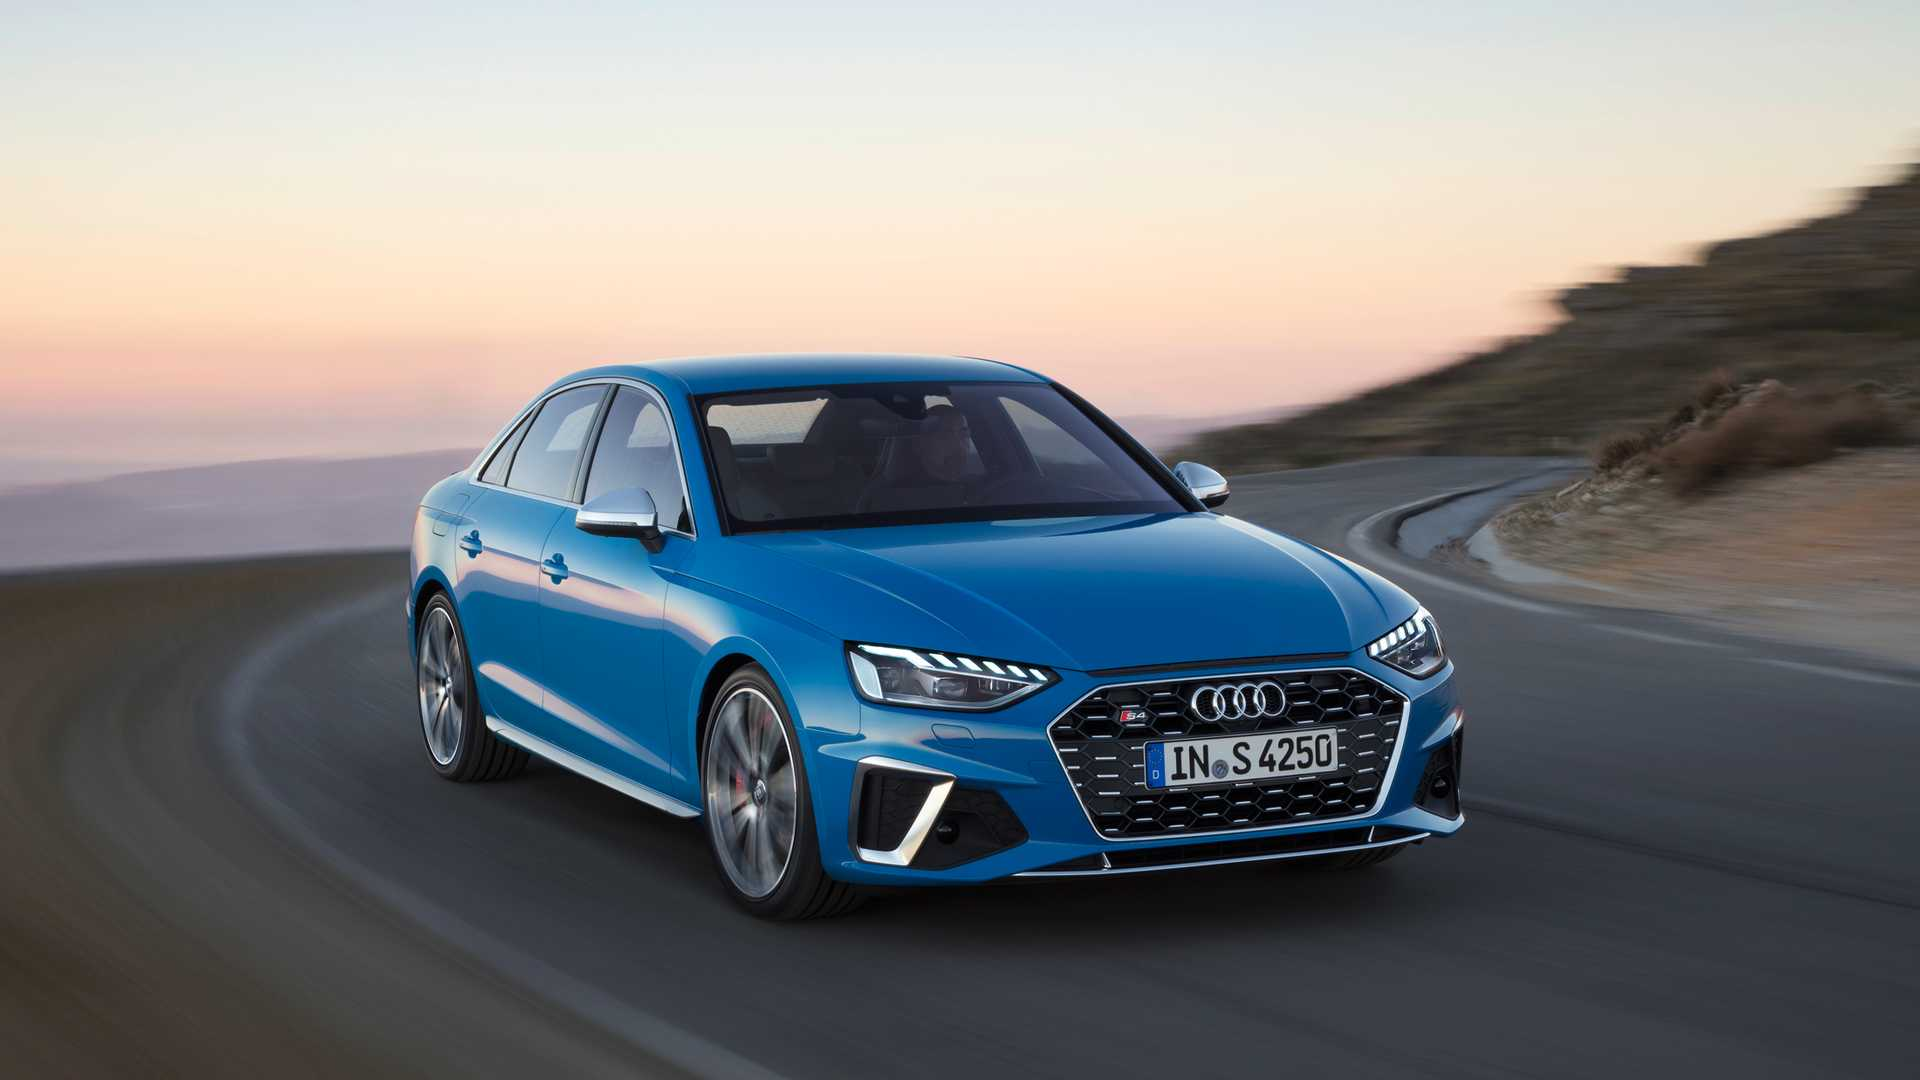 2020 Audi S4 TDI (Color: Turbo Blue) Front Three-Quarter Wallpapers (1)